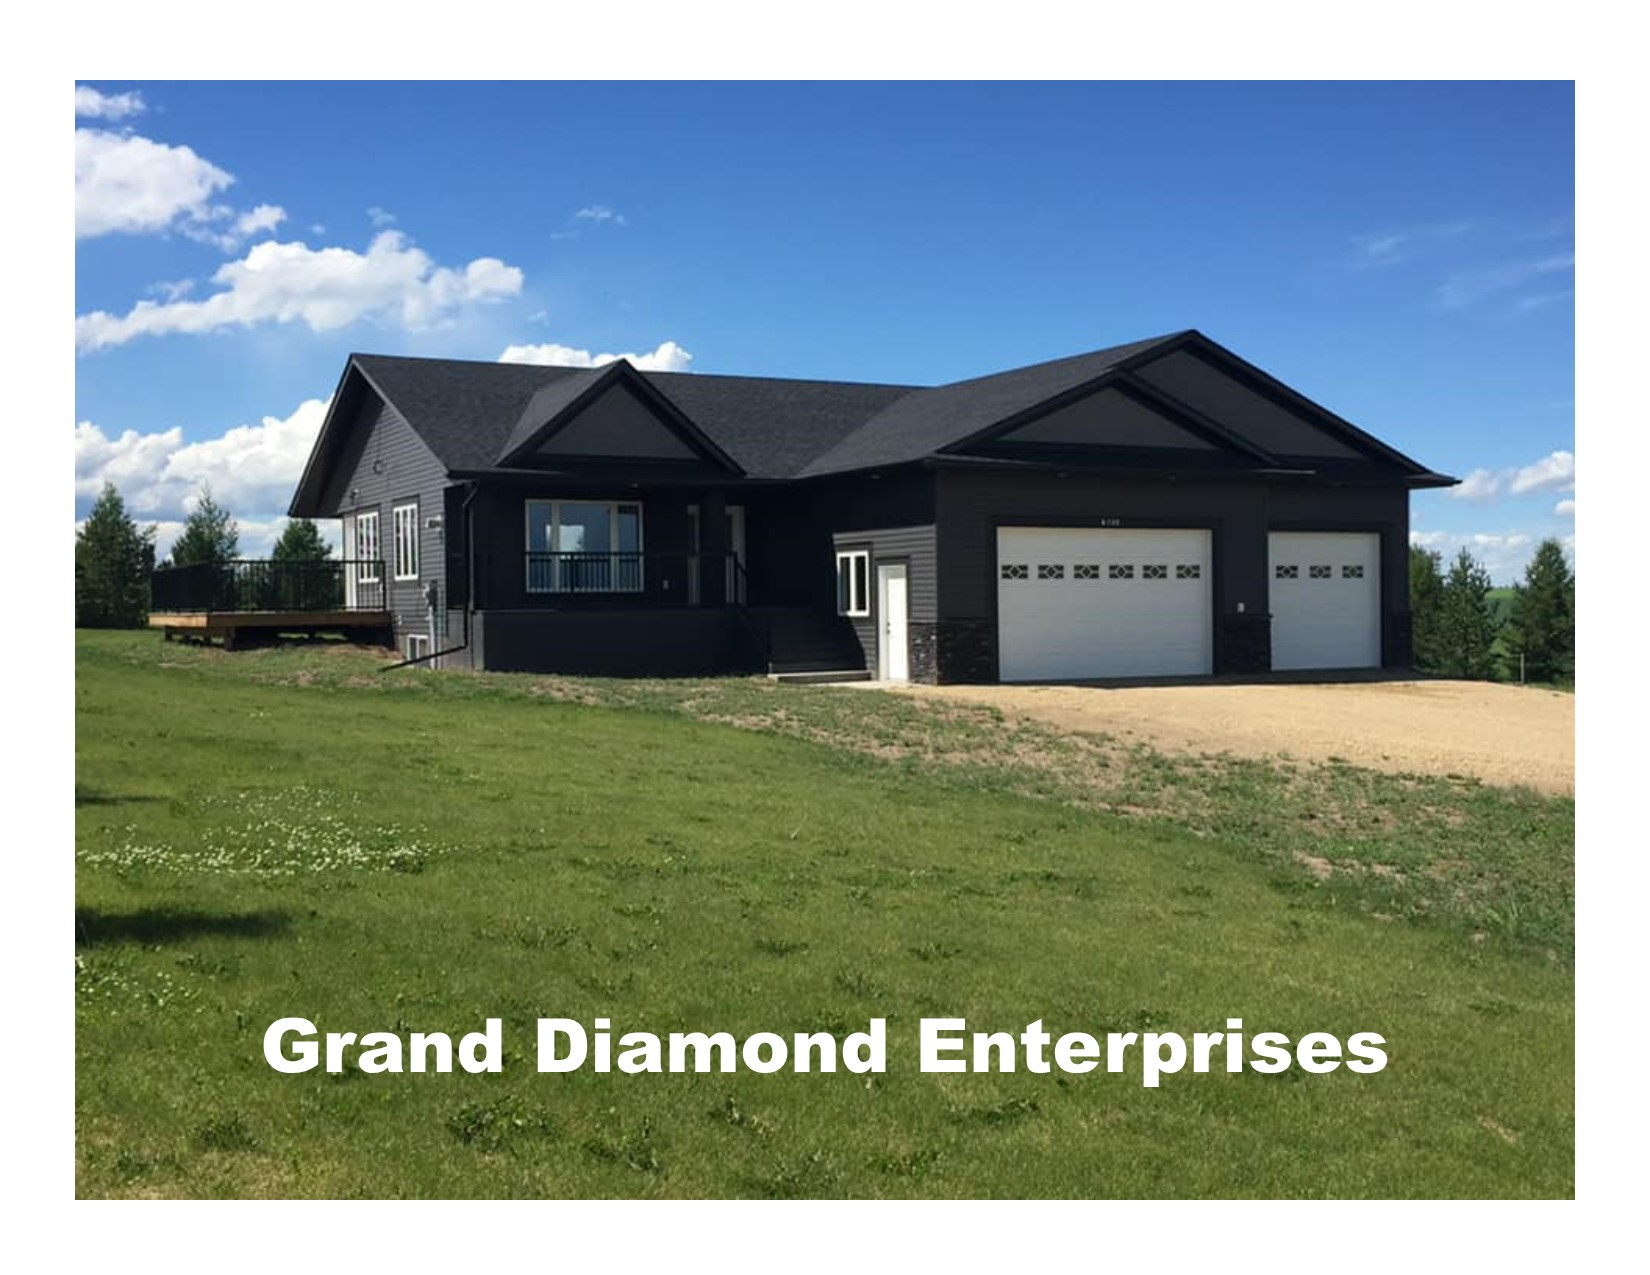 Grand Diamond photo 1